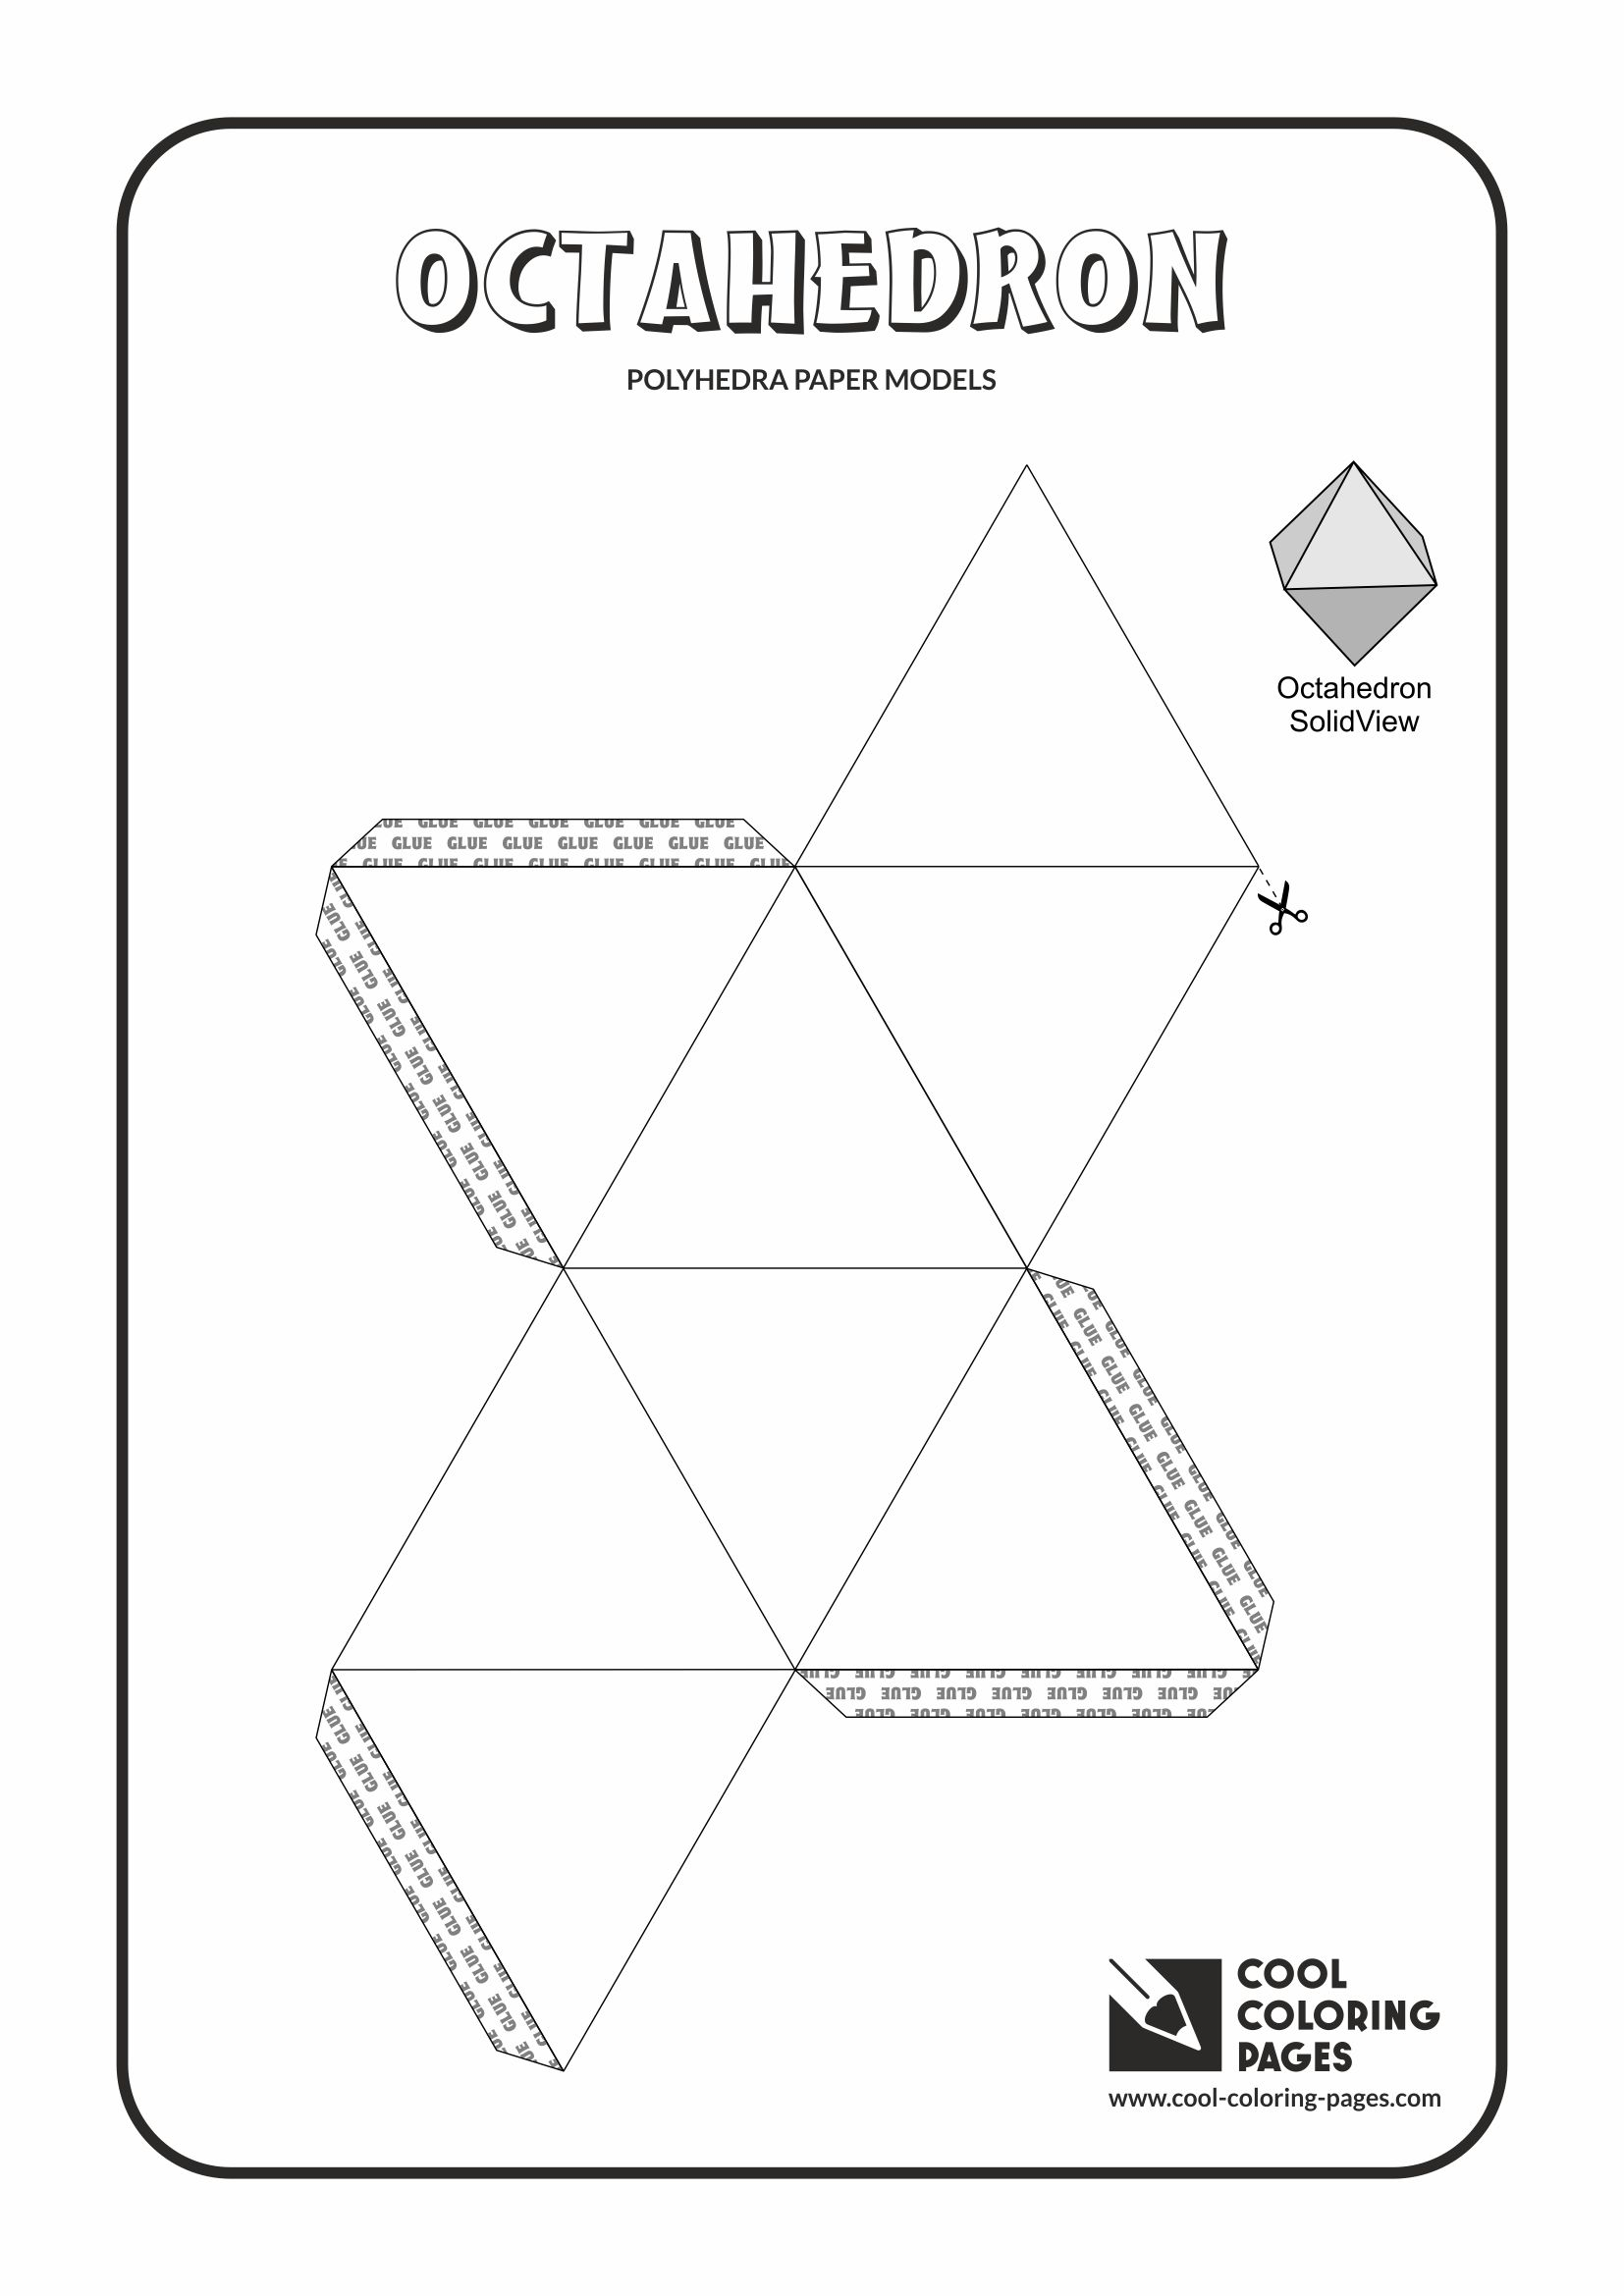 Cool Coloring Pages - Paper models of polyhedra / Paper solids models / Octahedron